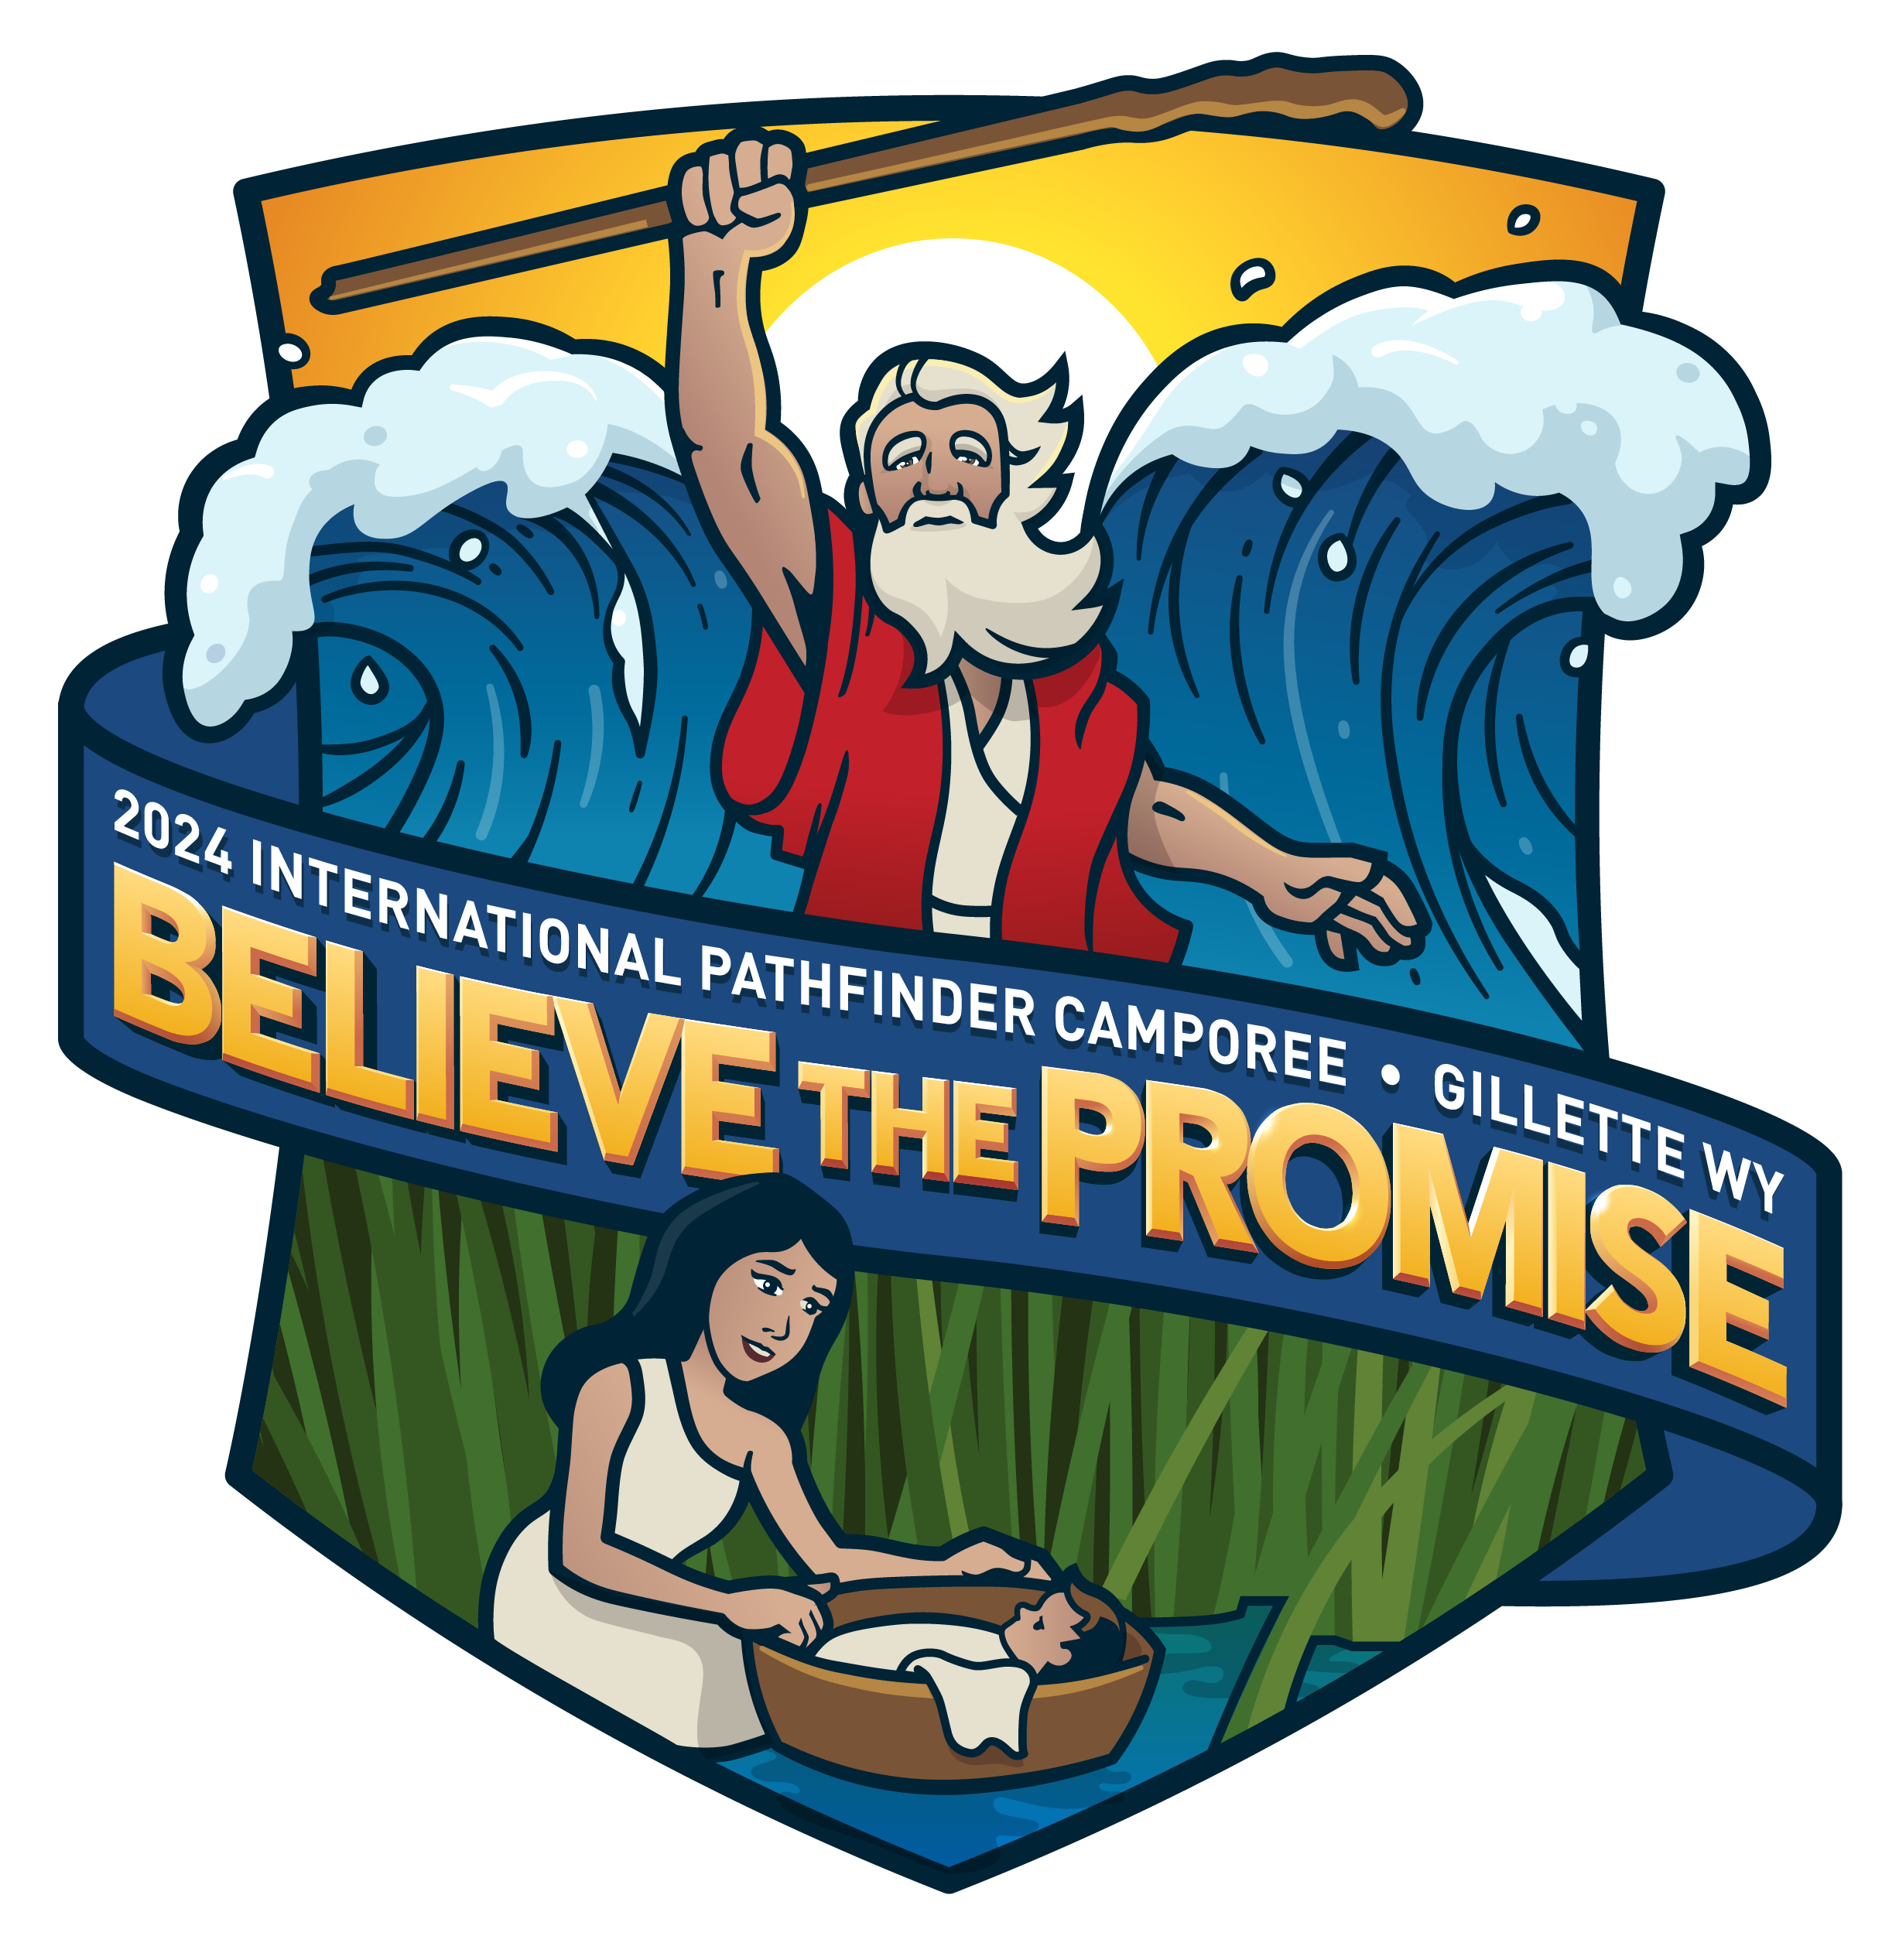 https://camporee.org/app/uploads/2021/01/Believe-the-Promise-RGB.png